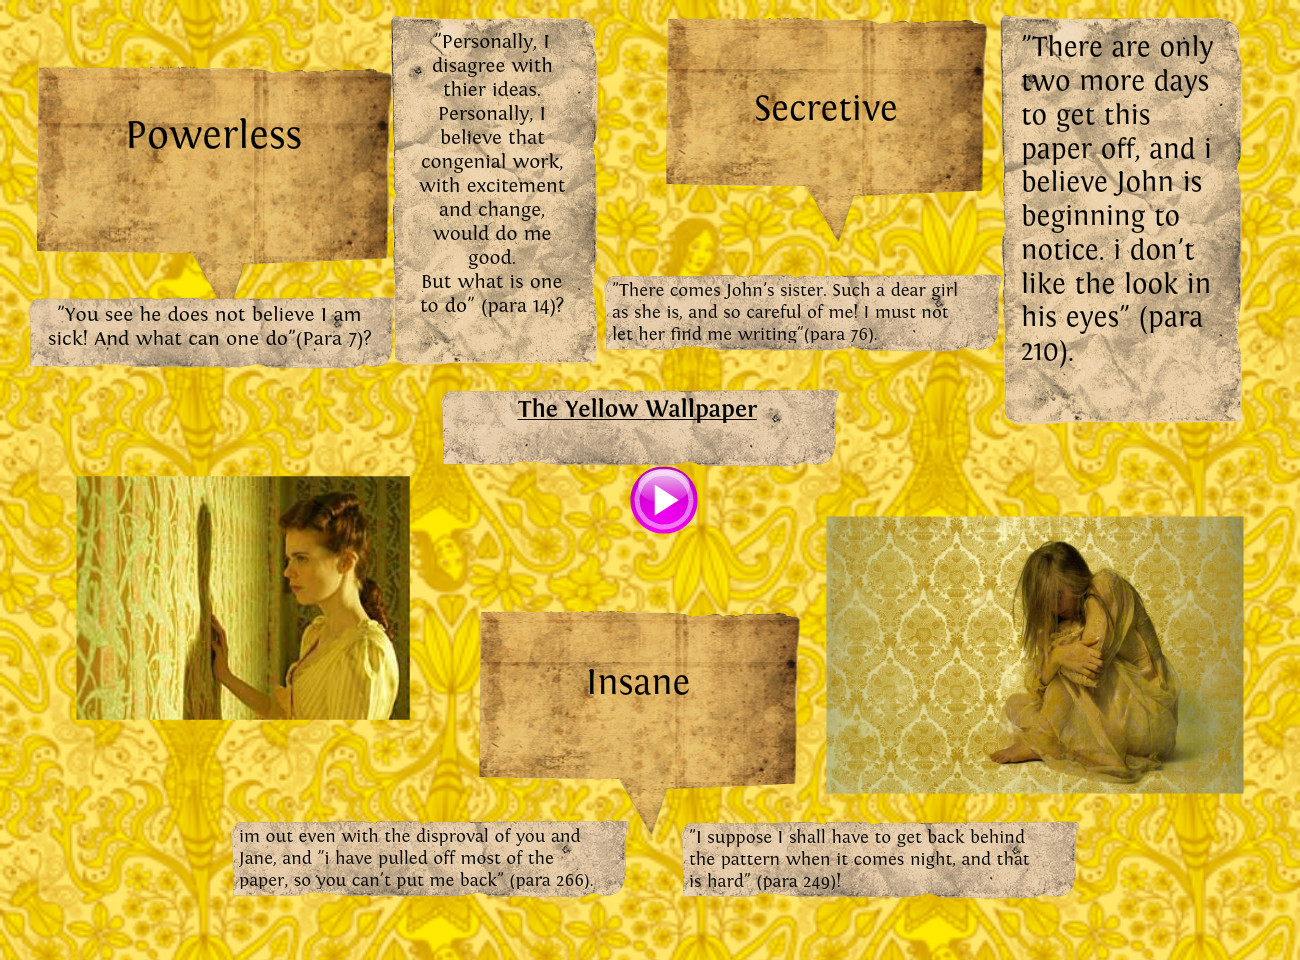 The yellow wallpaper research paper